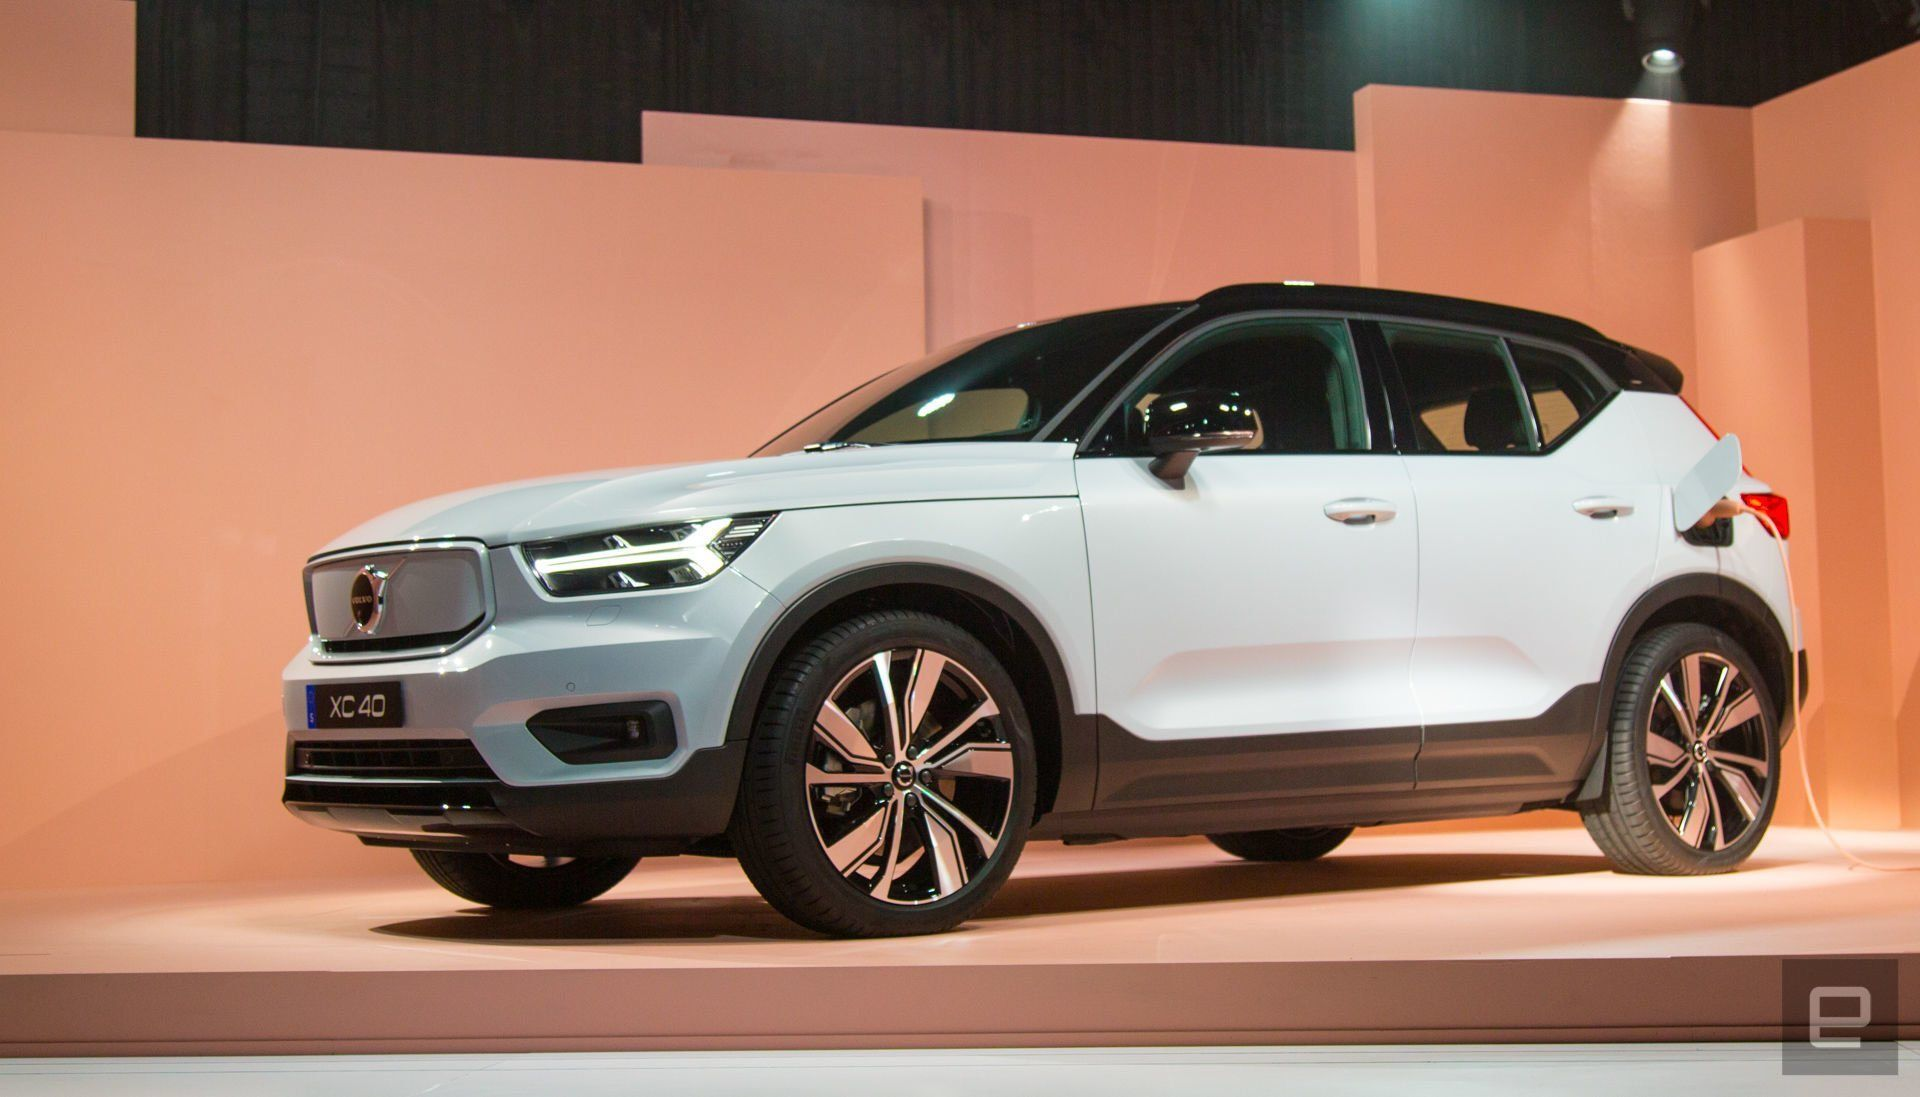 2021 Volvo S60 Engine in 2020 Electric cars, Volvo, Car